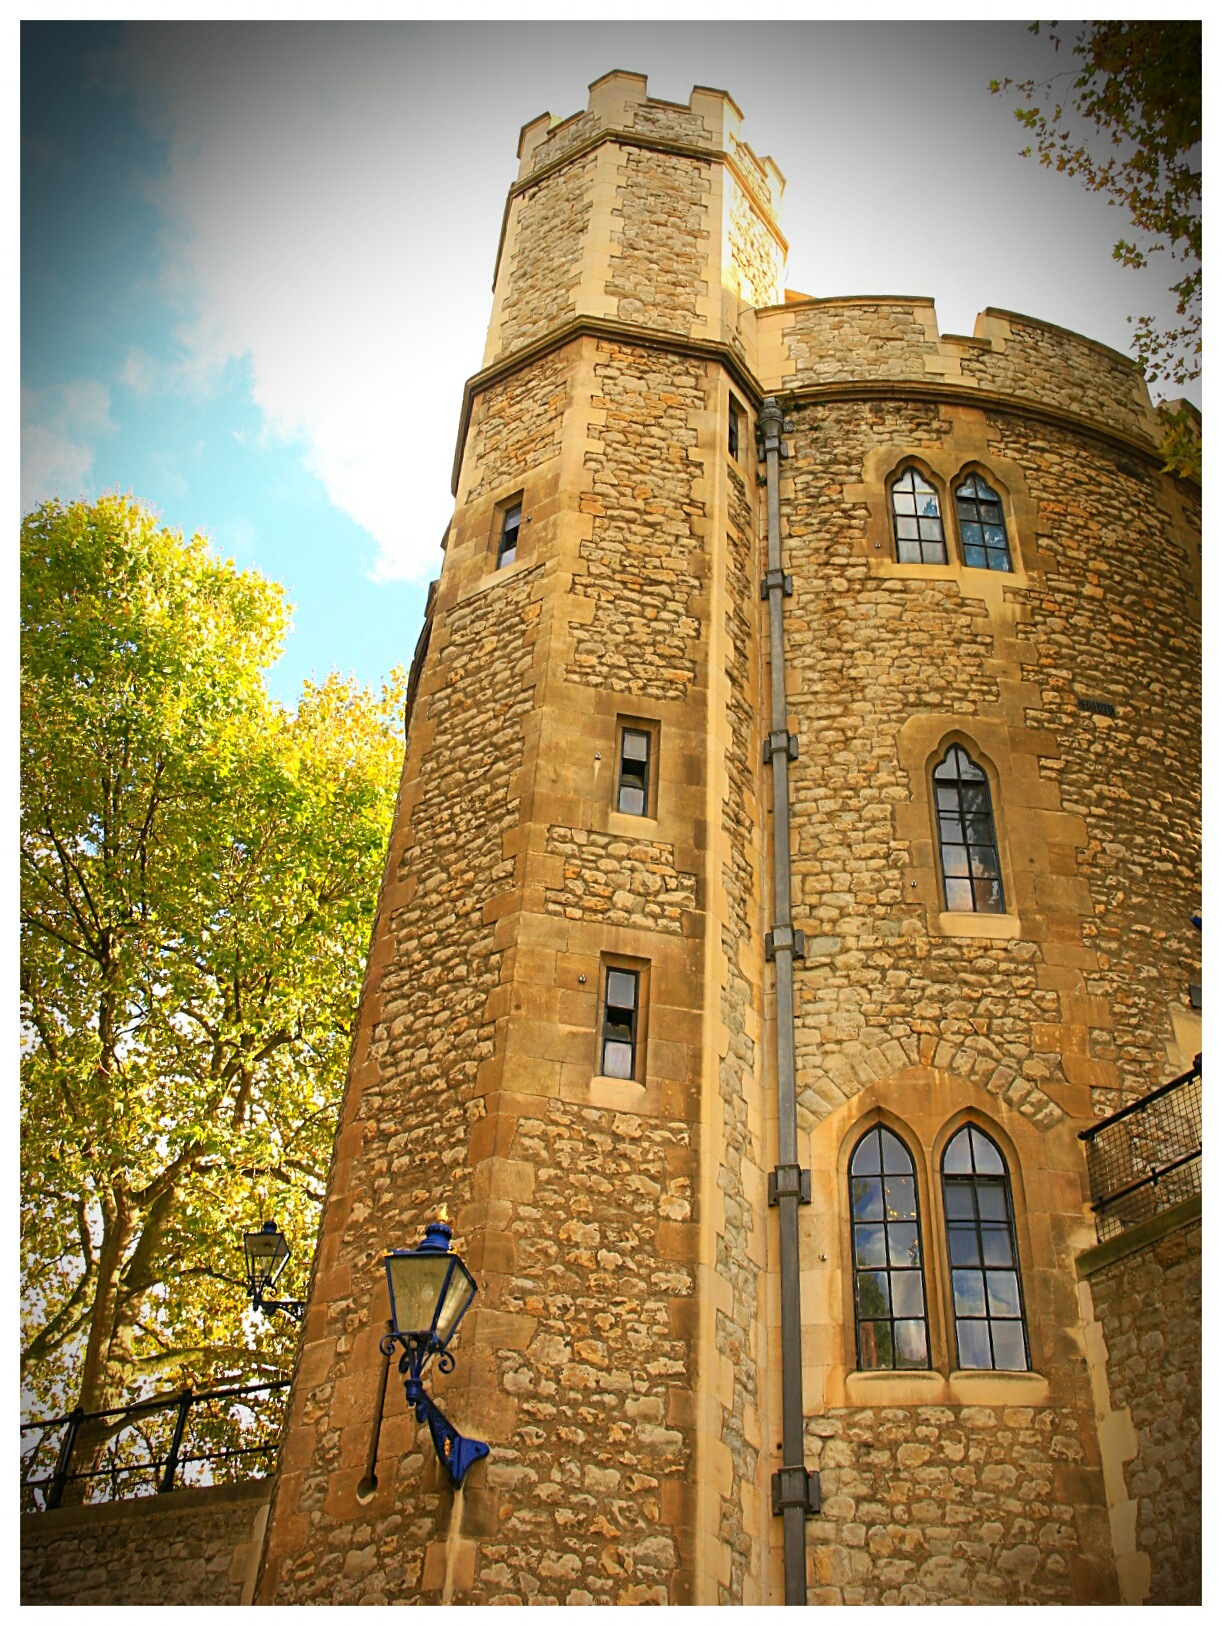 Autumn at the Tower by Yvonne Lewis